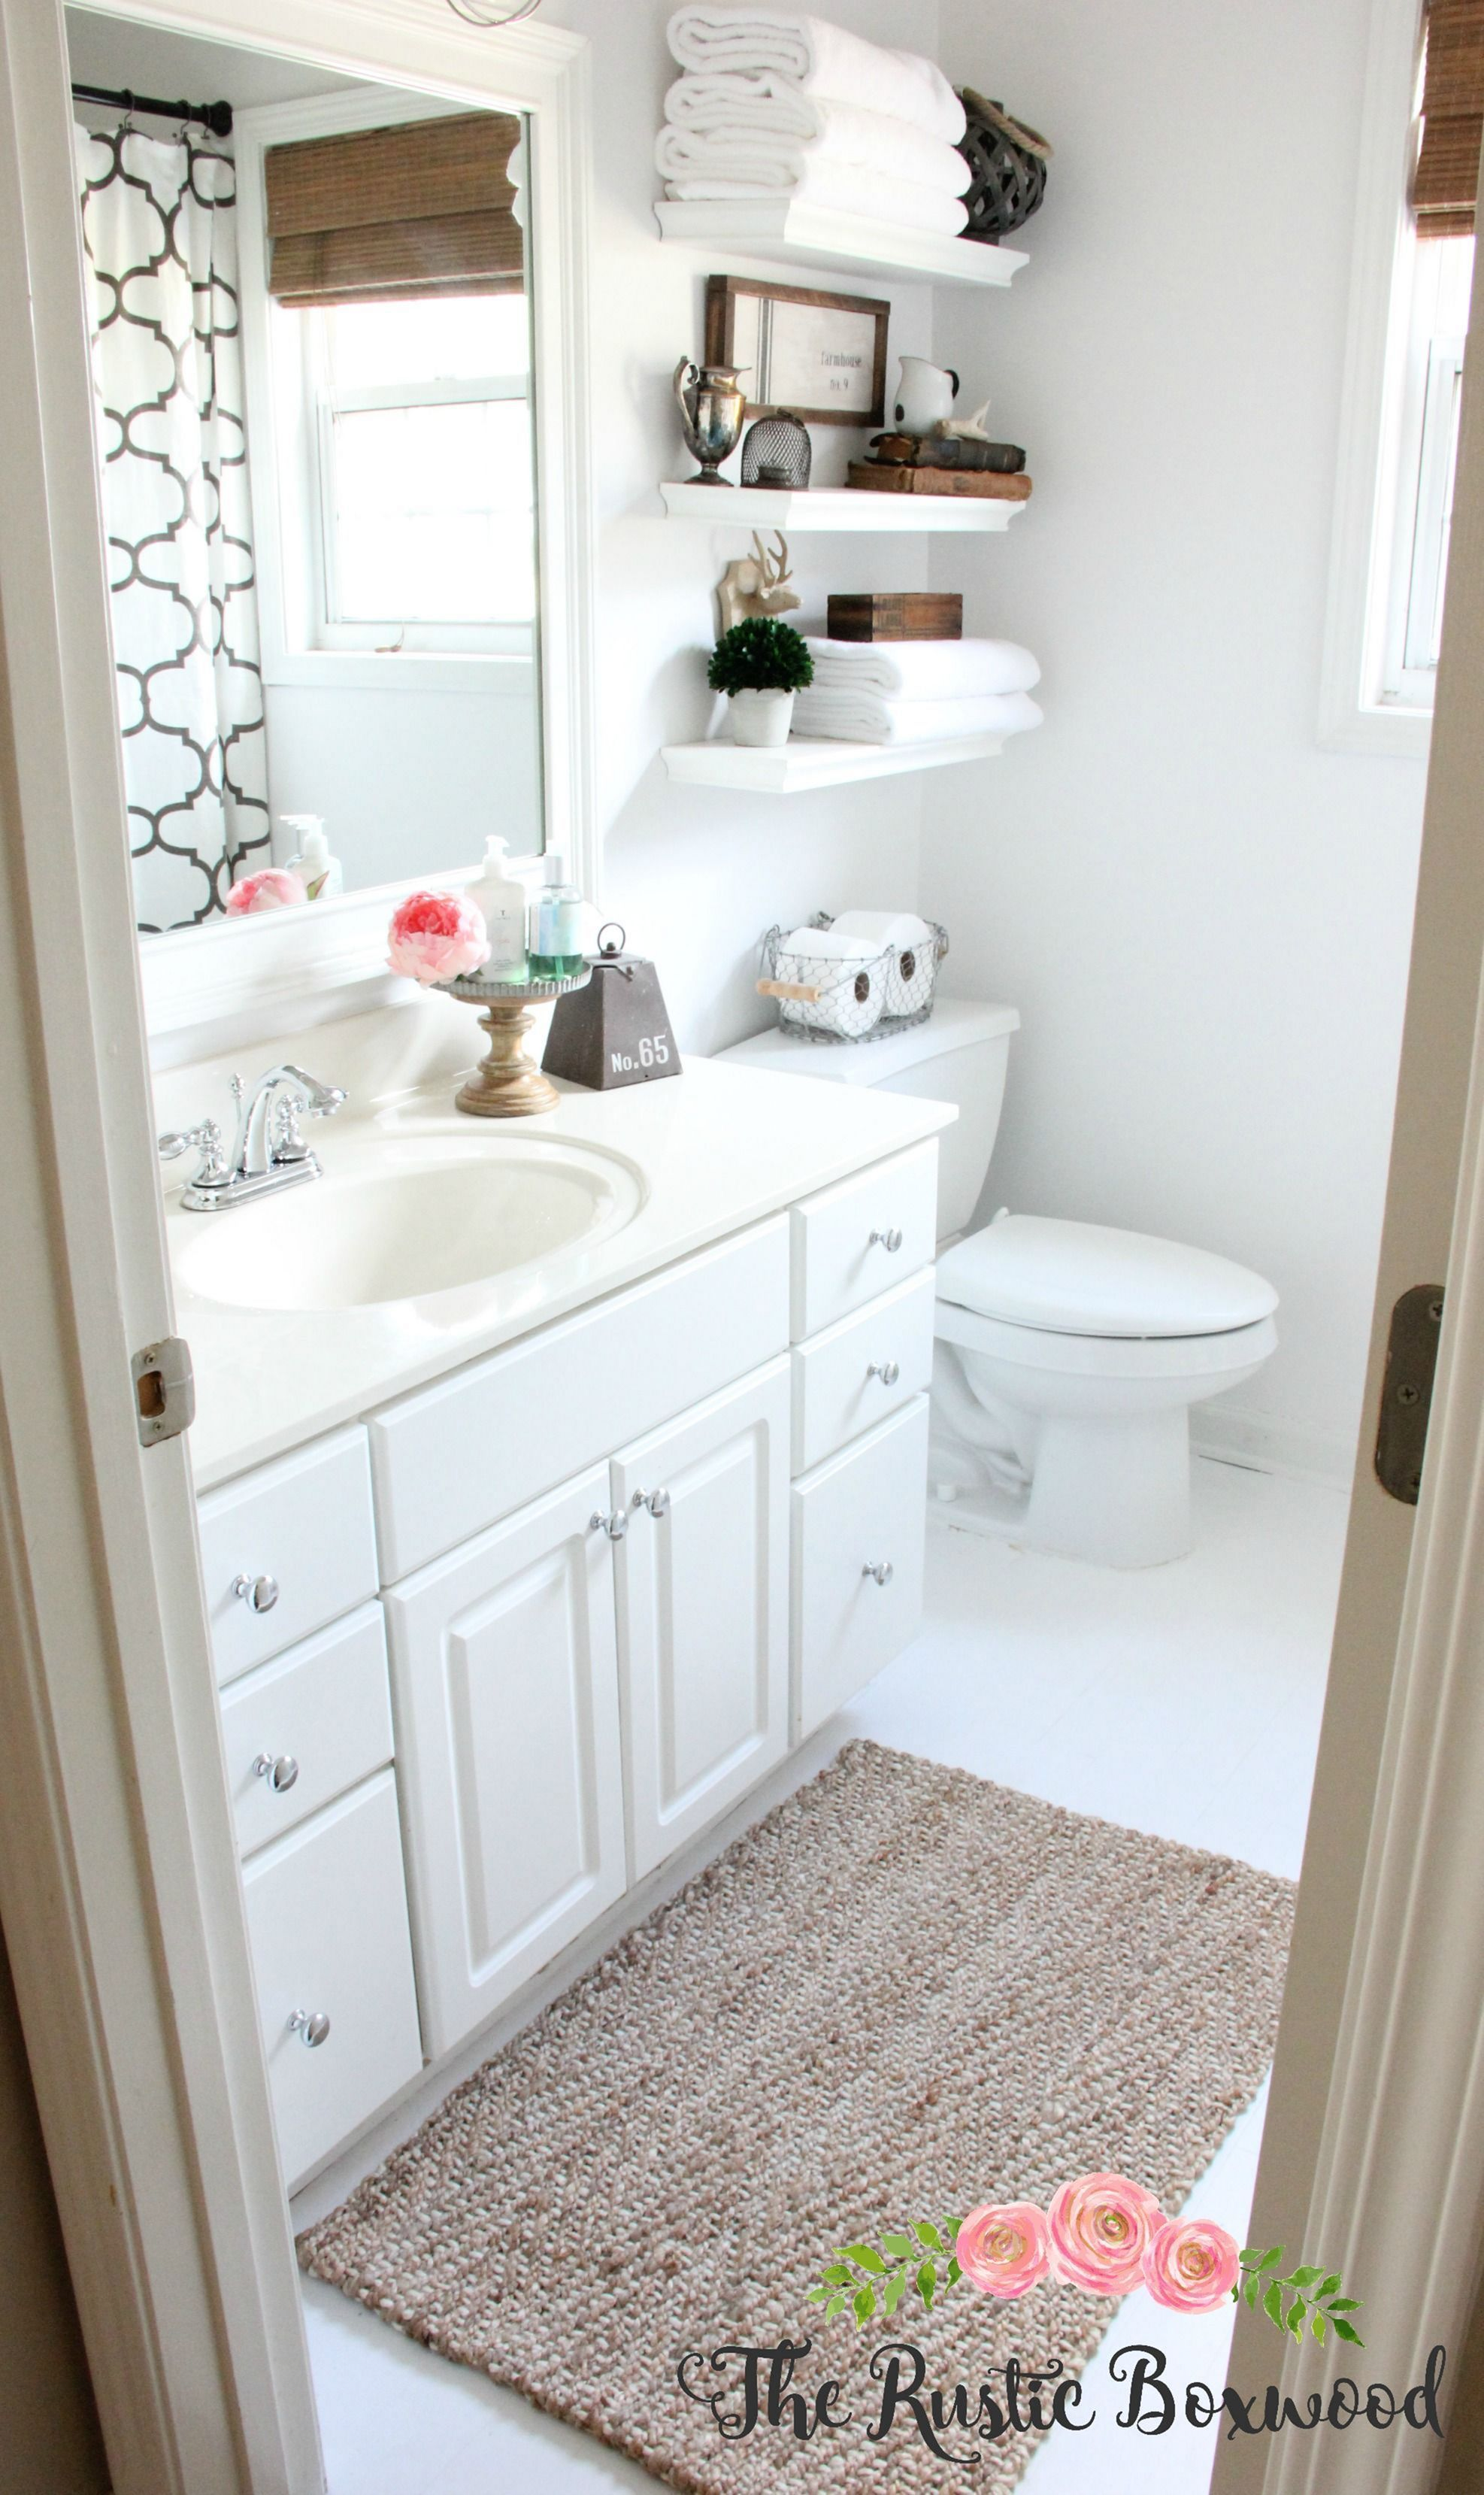 Cool On A Budget Apartment Bathroom Renovation Before and After: 30 ...